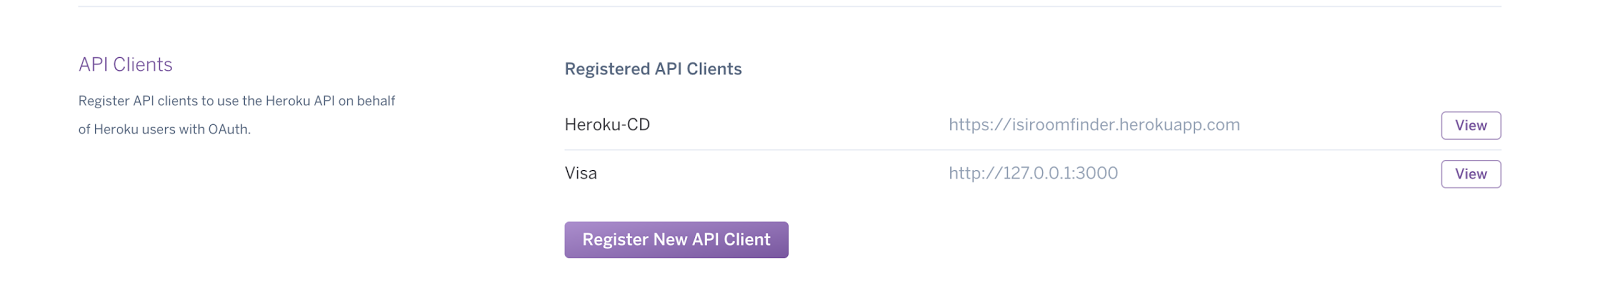 Heroku Authentication with PassportJS for Node Applications - Oyecode